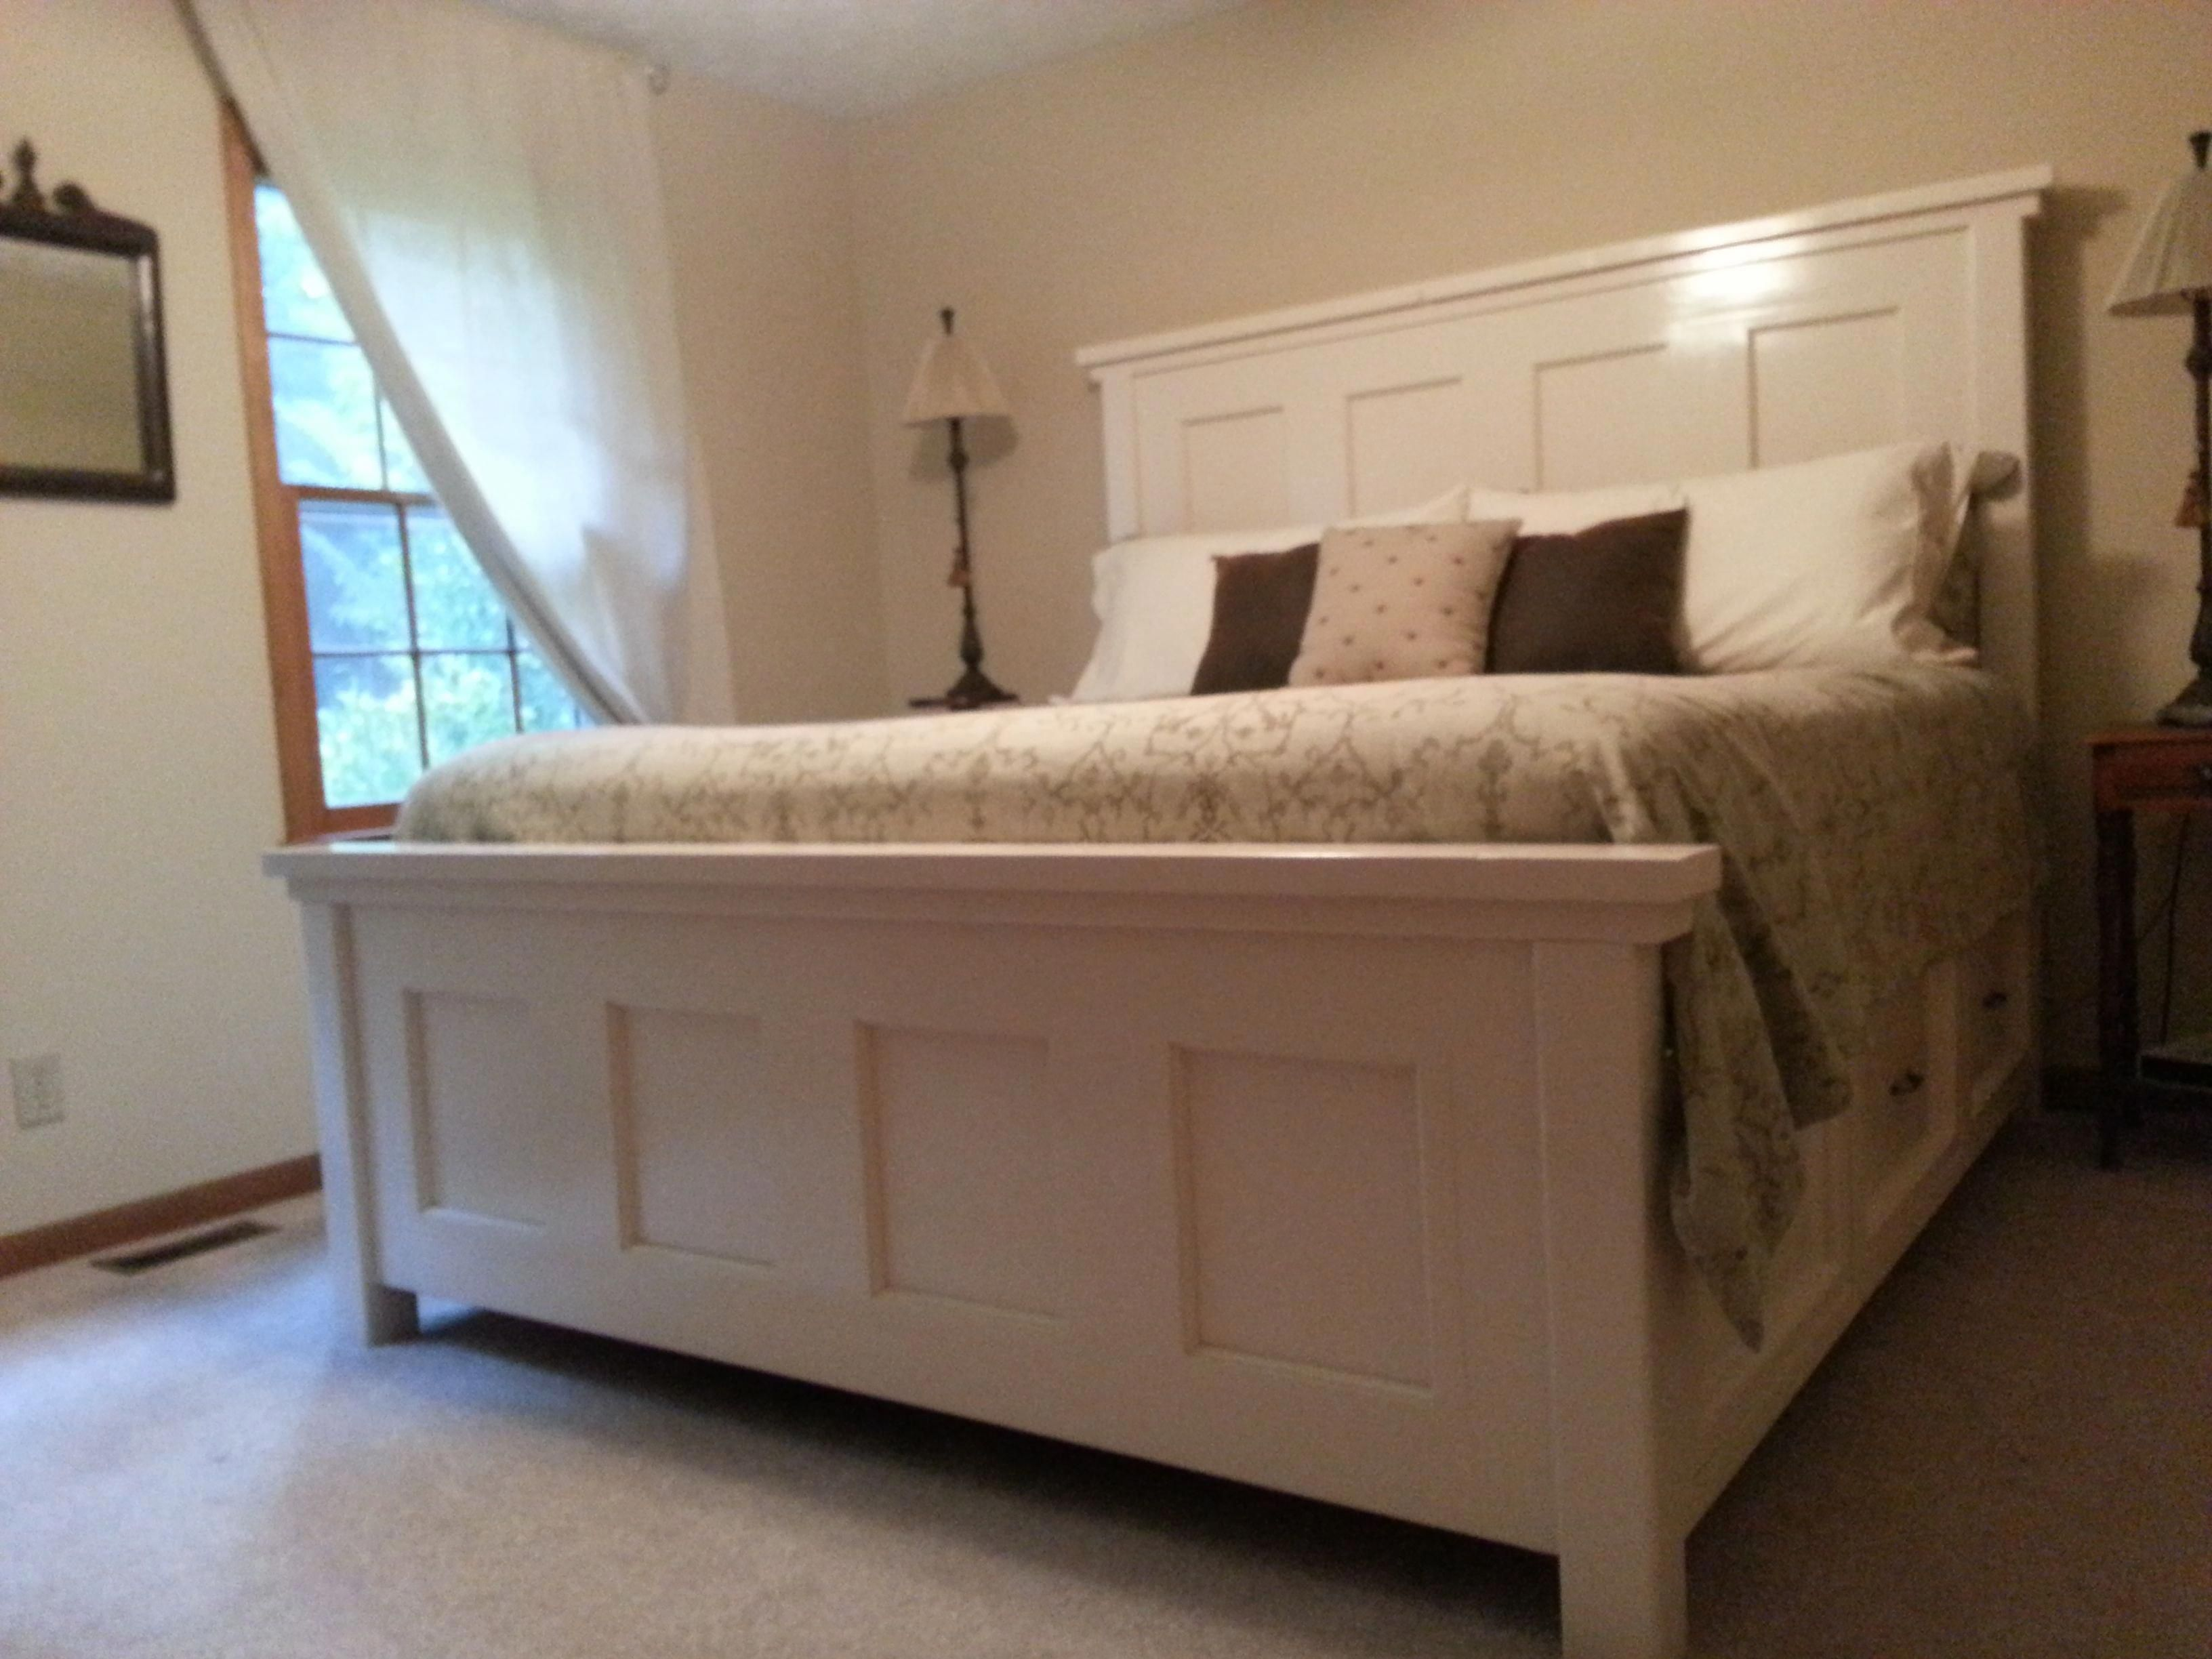 King Farm House Bed Do It Yourself Home Projects From Ana White Bedframes Farmhouse Bedroom Set Farmhouse Bedding House Beds